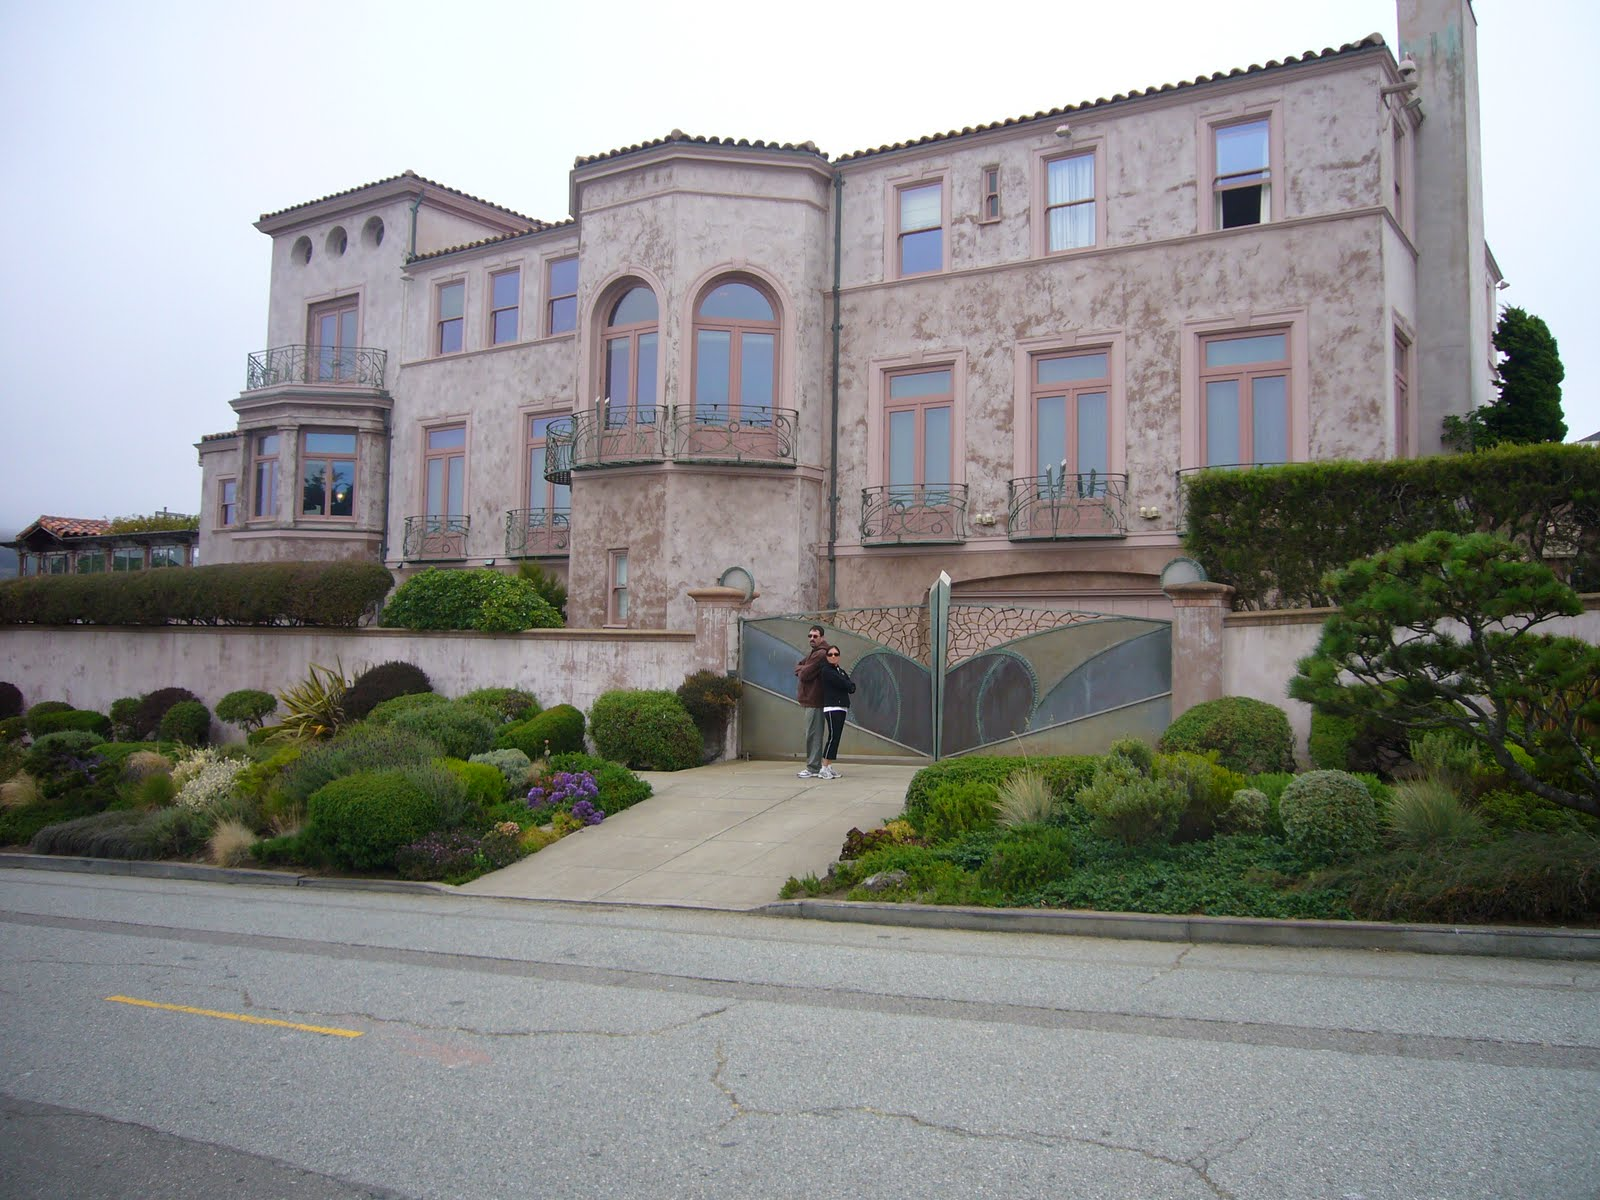 wonderful robin williams houses all known as the villa of smiles